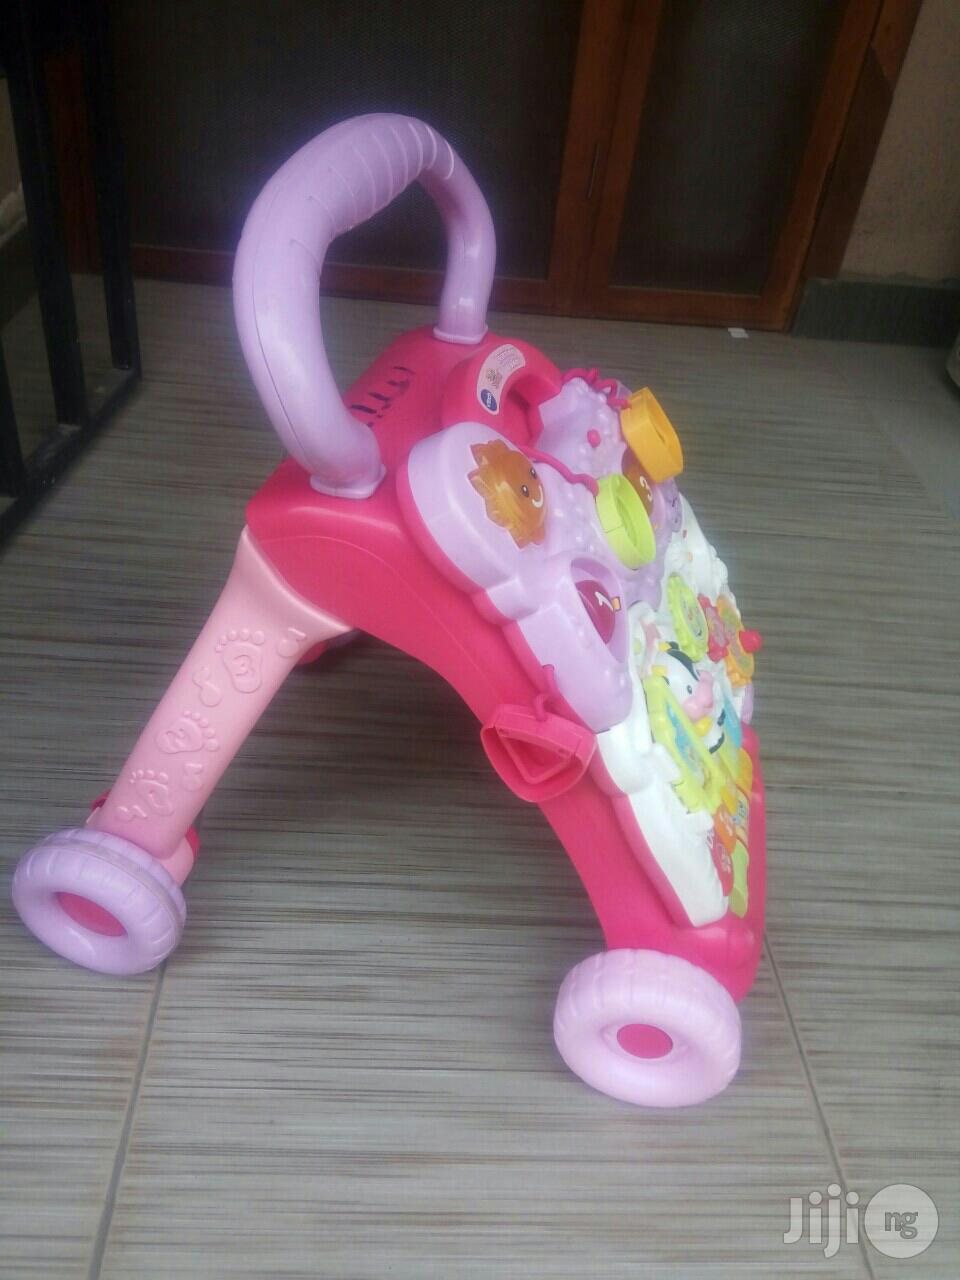 Tokunbo Uk Used Vtech Baby Learning Walker | Children's Gear & Safety for sale in Ikeja, Lagos State, Nigeria